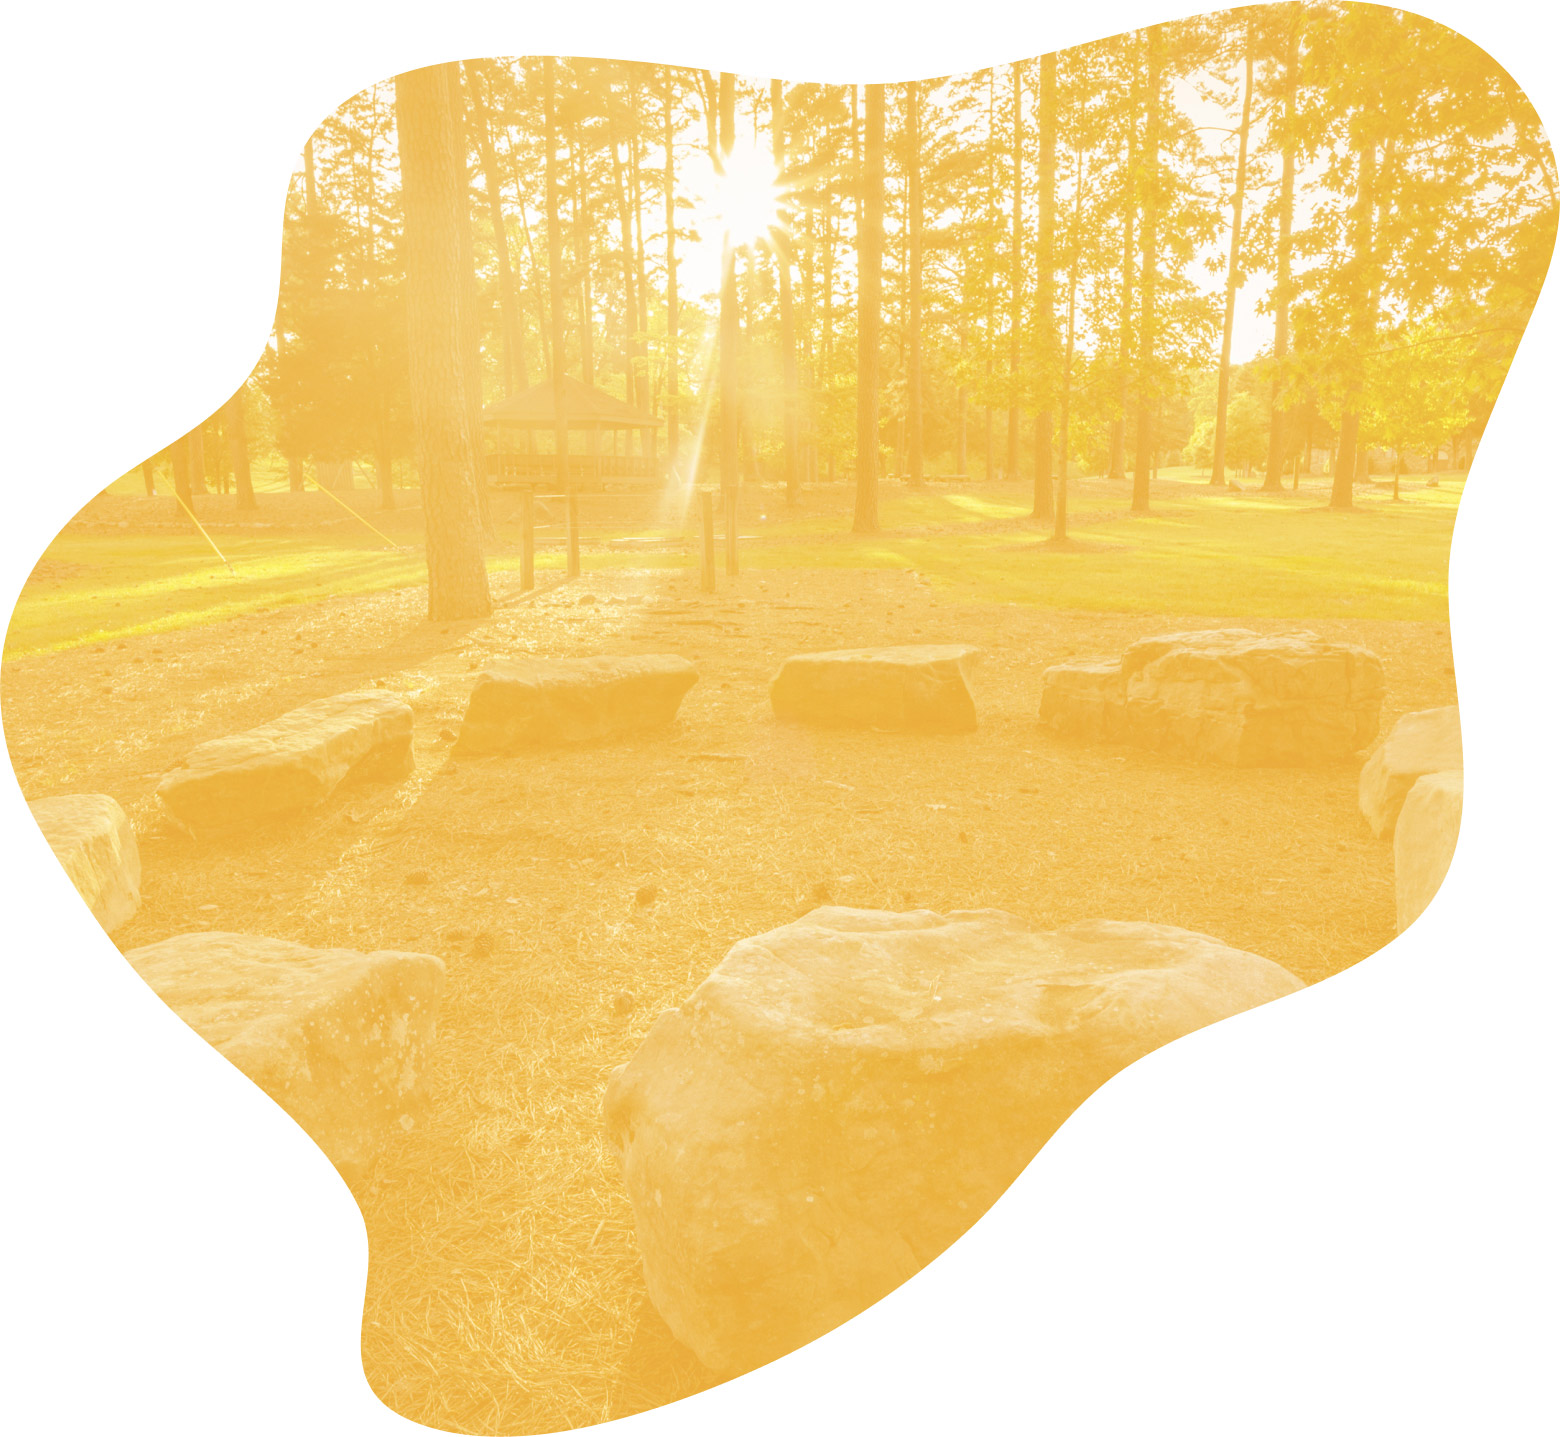 A campsite with stone seats arrayed around an outdoor fireplace. A yellow overlay has been used to stylize the image.